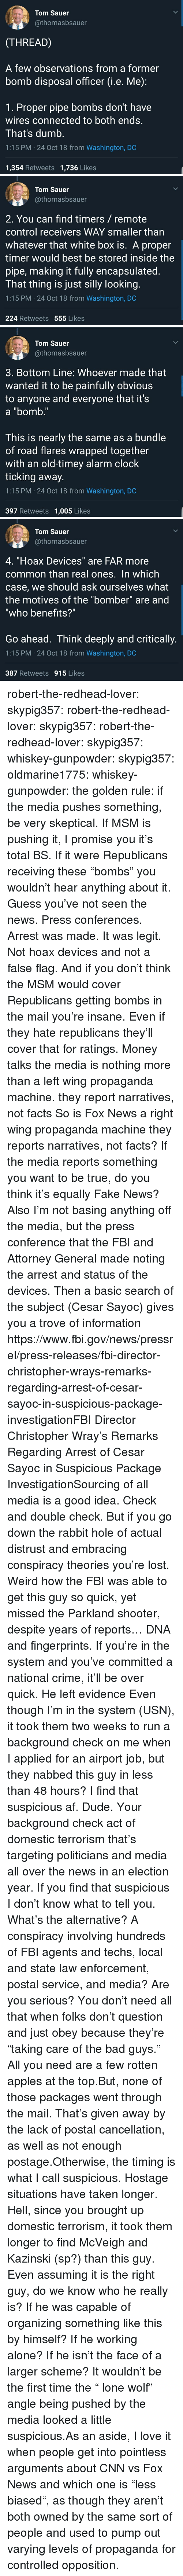 "attorney general: Tom Sauer  @thomasbsauer  (THREAD)  A few observations from a former  bomb disposal officer G.e. Me)  1. Proper pipe bombs don't have  wires connected to both ends.  That's dumb.  1:15 PM 24 Oct 18 from Washington, DC  1,354 Retweets 1,736 Likes   Tom Sauer  @thomasbsauer  2. You can find timers/ remote  control receivers WAY smaller than  whatever that white box is. A proper  timer would best be stored inside the  pipe, making it fully encapsulated  I hat thing is just silly looking  1:15 PM 24 Oct 18 from Washington, DC  224 Retweets 555 Likes   Tom Sauer  @thomasbsauer  3. Bottom Line: Whoever made that  wanted it to be painfully obvious  to anyone and everyone that it's  a ""bomb.""  This is nearly the same as a bundle  of road flares wrapped together  with an old-timey alarm clock  ticking away.  1:15 PM 24 Oct 18 from Washington, DC  397 Retweets 1,005 Likes   Tom Sauer  @thomasbsauer  4, ""Hoax Devices"" are FAR more  common than real ones. In which  case, we should ask ourselves what  the motives of the ""bomber"" are and  ""who benefits?""  Go ahead. Think deeply and critically.  1:15 PM 24 Oct 18 from Washington, DC  387 Retweets 915 Likes robert-the-redhead-lover:  skypig357:  robert-the-redhead-lover:  skypig357:  robert-the-redhead-lover:  skypig357:  whiskey-gunpowder:  skypig357:  oldmarine1775:  whiskey-gunpowder: the golden rule: if the media pushes something, be very skeptical. If MSM is pushing it, I promise you it's total BS. If it were Republicans receiving these ""bombs"" you wouldn't hear anything about it.   Guess you've not seen the news. Press conferences. Arrest was made. It was legit. Not hoax devices and not a false flag. And if you don't think the MSM would cover Republicans getting bombs in the mail you're insane. Even if they hate republicans they'll cover that for ratings. Money talks   the media is nothing more than a left wing propaganda machine. they report narratives, not facts  So is Fox News a right wing propaganda machine they reports narratives, not facts? If the media reports something you want to be true, do you think it's equally Fake News? Also I'm not basing anything off the media, but the press conference that the FBI and Attorney General made noting the arrest and status of the devices. Then a basic search of the subject (Cesar Sayoc) gives you a trove of information https://www.fbi.gov/news/pressrel/press-releases/fbi-director-christopher-wrays-remarks-regarding-arrest-of-cesar-sayoc-in-suspicious-package-investigationFBI Director Christopher Wray's Remarks Regarding Arrest of Cesar Sayoc in Suspicious Package InvestigationSourcing of all media is a good idea. Check and double check. But if you go down the rabbit hole of actual distrust and embracing conspiracy theories you're lost.   Weird how the FBI was able to get this guy so quick, yet missed the Parkland shooter, despite years of reports…  DNA and fingerprints. If you're in the system and you've committed a national crime, it'll be over quick. He left evidence   Even though I'm in the system (USN), it took them two weeks to run a background check on me when I applied for an airport job, but they nabbed this guy in less than 48 hours? I find that suspicious af.  Dude. Your background check  act of domestic terrorism that's targeting politicians and media all over the news in an election year. If you find that suspicious I don't know what to tell you. What's the alternative? A conspiracy involving hundreds of FBI agents and techs, local and state law enforcement, postal service, and media? Are you serious?   You don't need all that when folks don't question and just obey because they're ""taking care of the bad guys."" All you need are a few rotten apples at the top.But, none of those packages went through the mail. That's given away by the lack of postal cancellation, as well as not enough postage.Otherwise, the timing is what I call suspicious. Hostage situations have taken longer. Hell, since you brought up domestic terrorism, it took them longer to find McVeigh and Kazinski (sp?) than this guy.  Even assuming it is the right guy, do we know who he really is? If he was capable of organizing something like this by himself? If he working alone? If he isn't the face of a larger scheme? It wouldn't be the first time the "" lone wolf"" angle being pushed by the media looked a little suspicious.As an aside, I love it when people get into pointless arguments about CNN vs Fox News and which one is ""less biased"", as though they aren't both owned by the same sort of people and used to pump out varying levels of propaganda for controlled opposition."